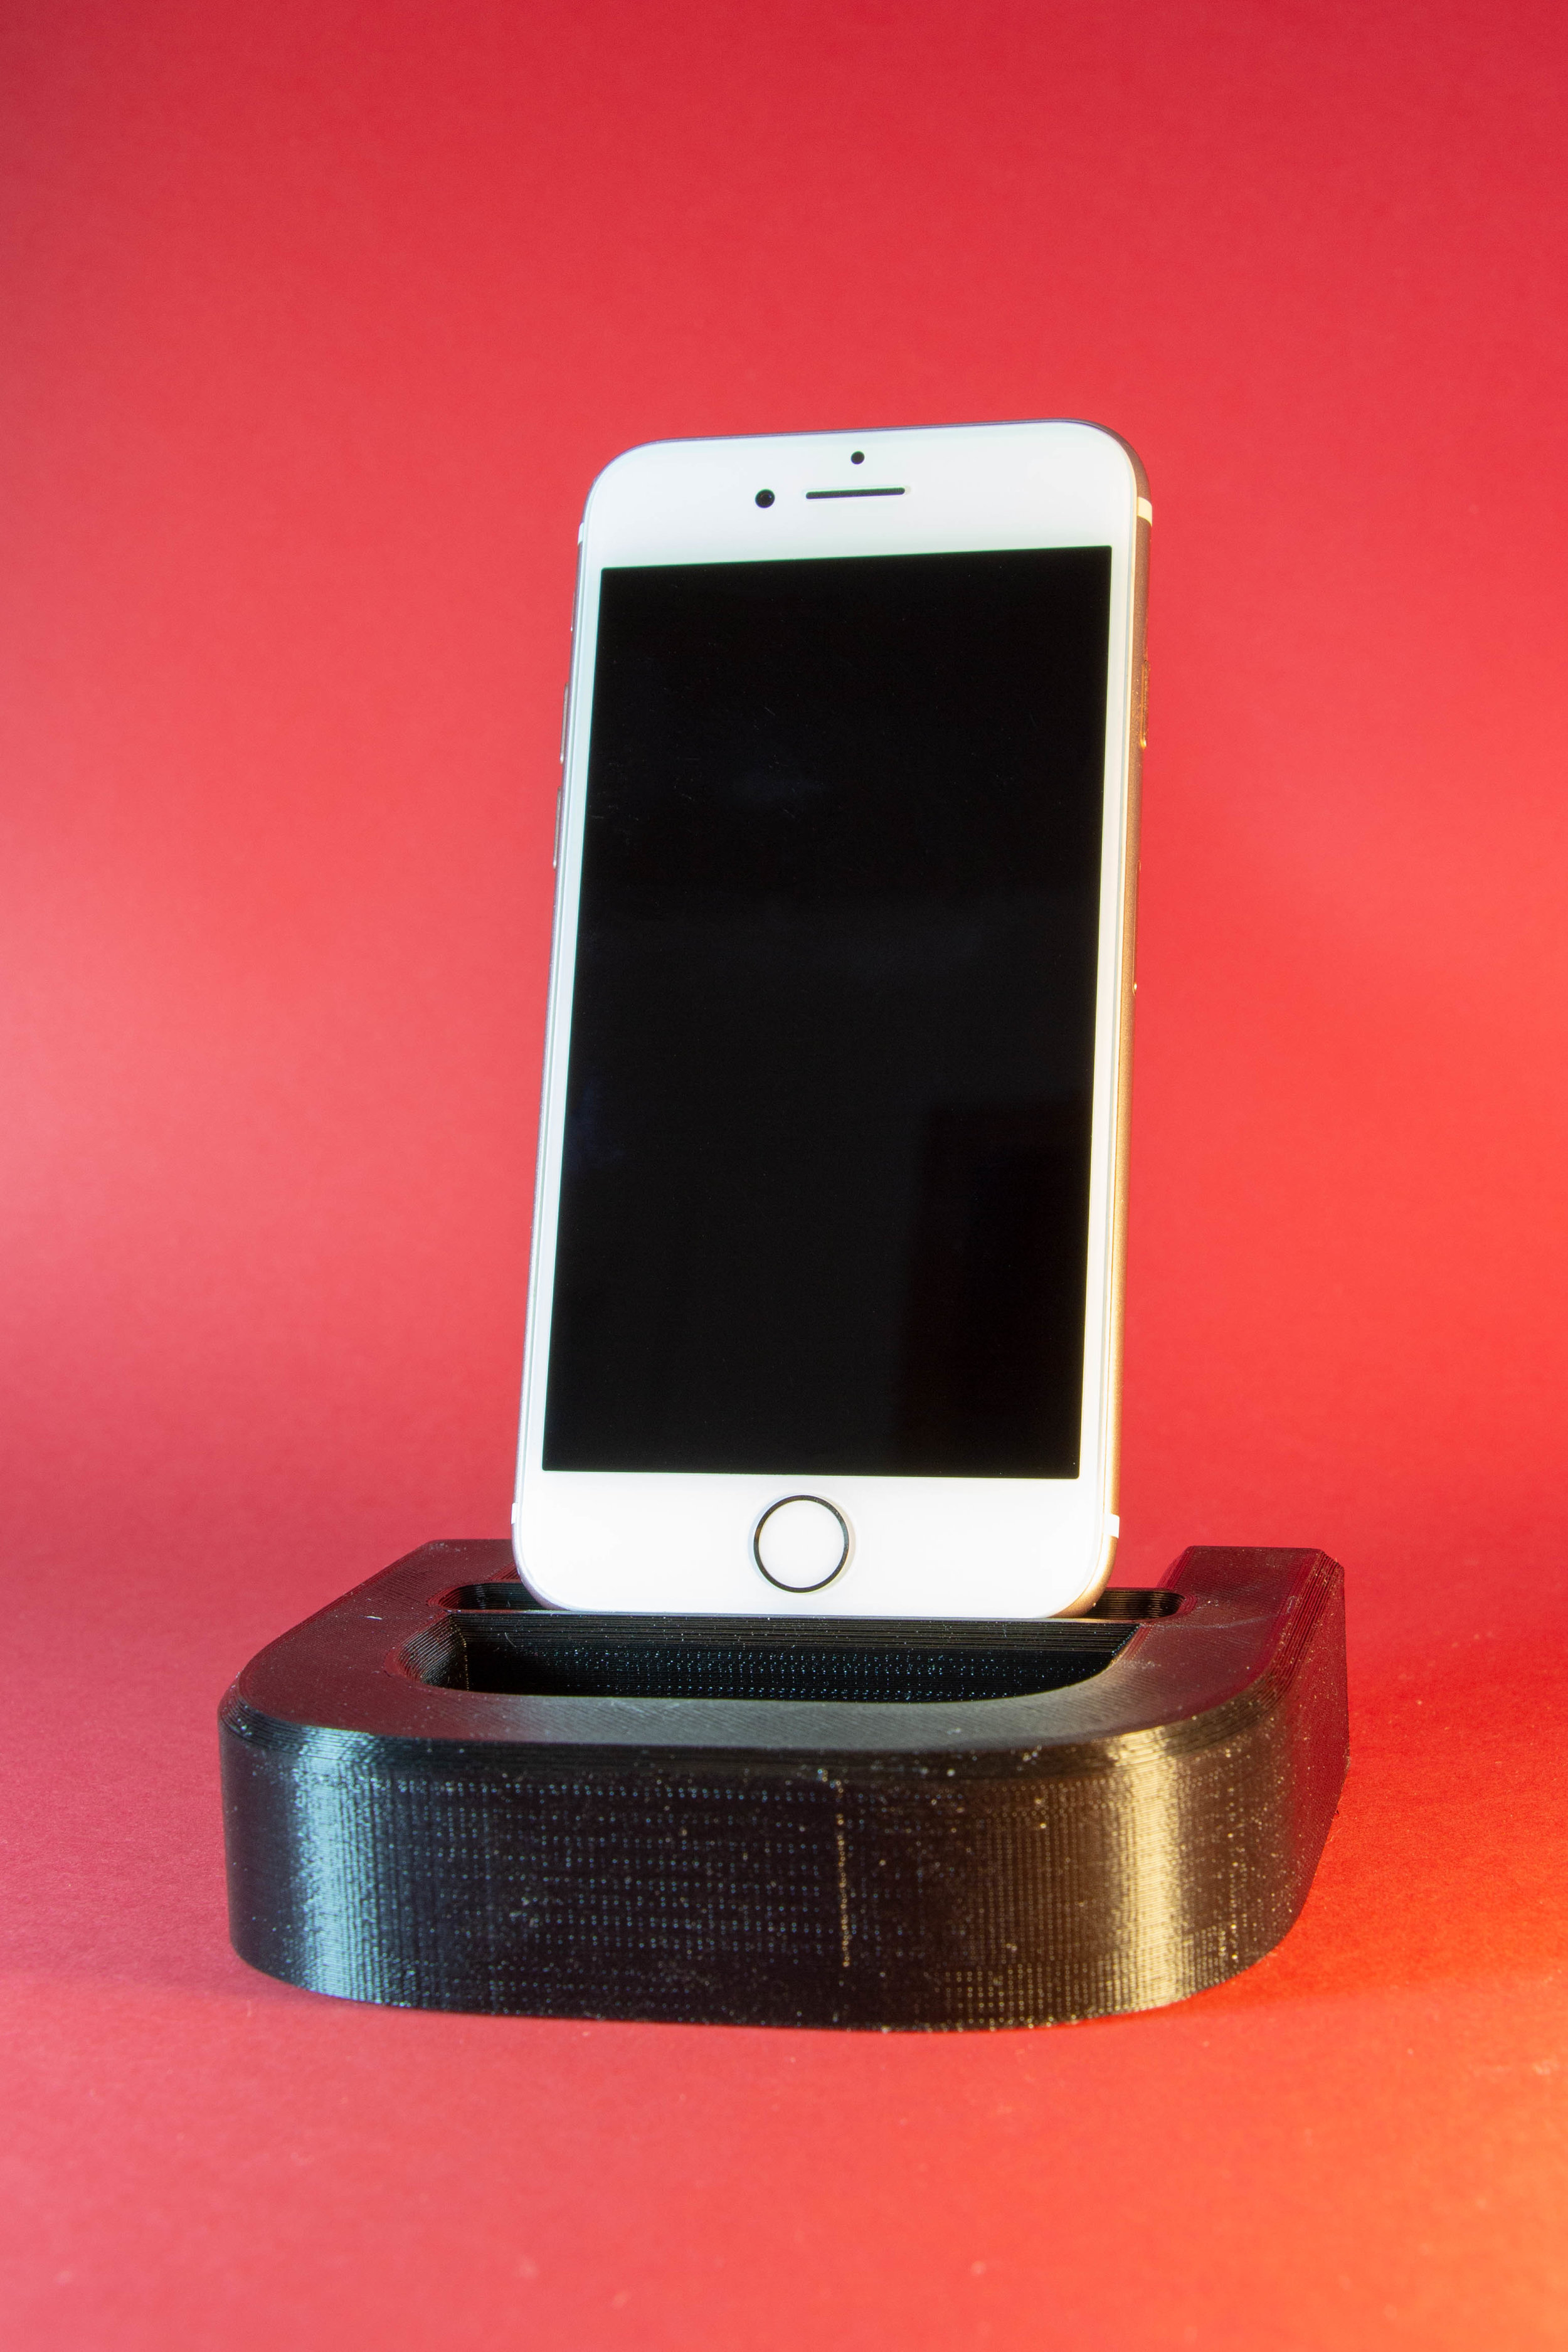 final product - The final product is a phone dock that is both functional and works with the companys brand guidlines.